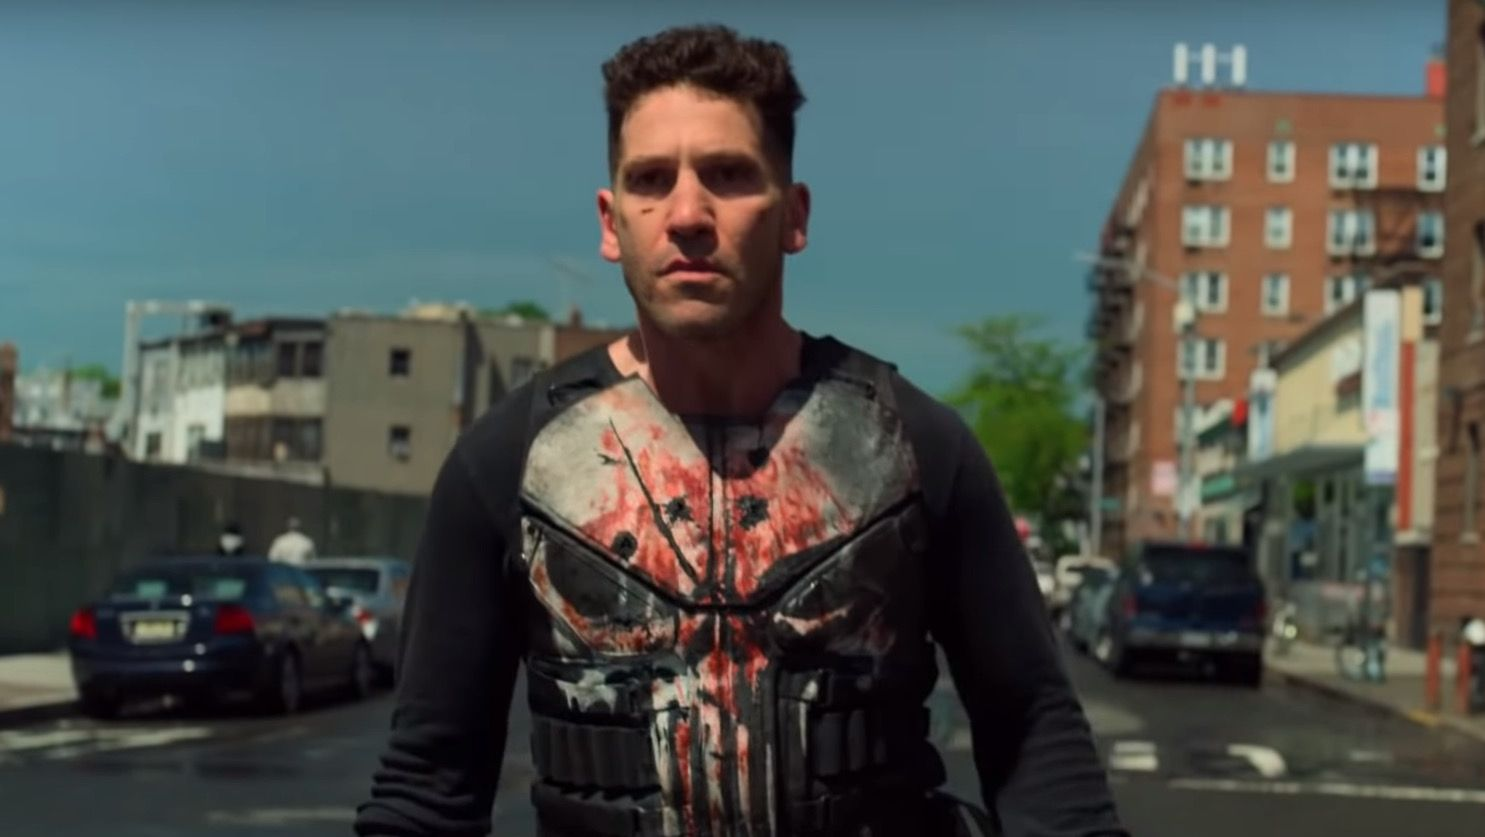 Here's why The Punisher's second season should be the show's last